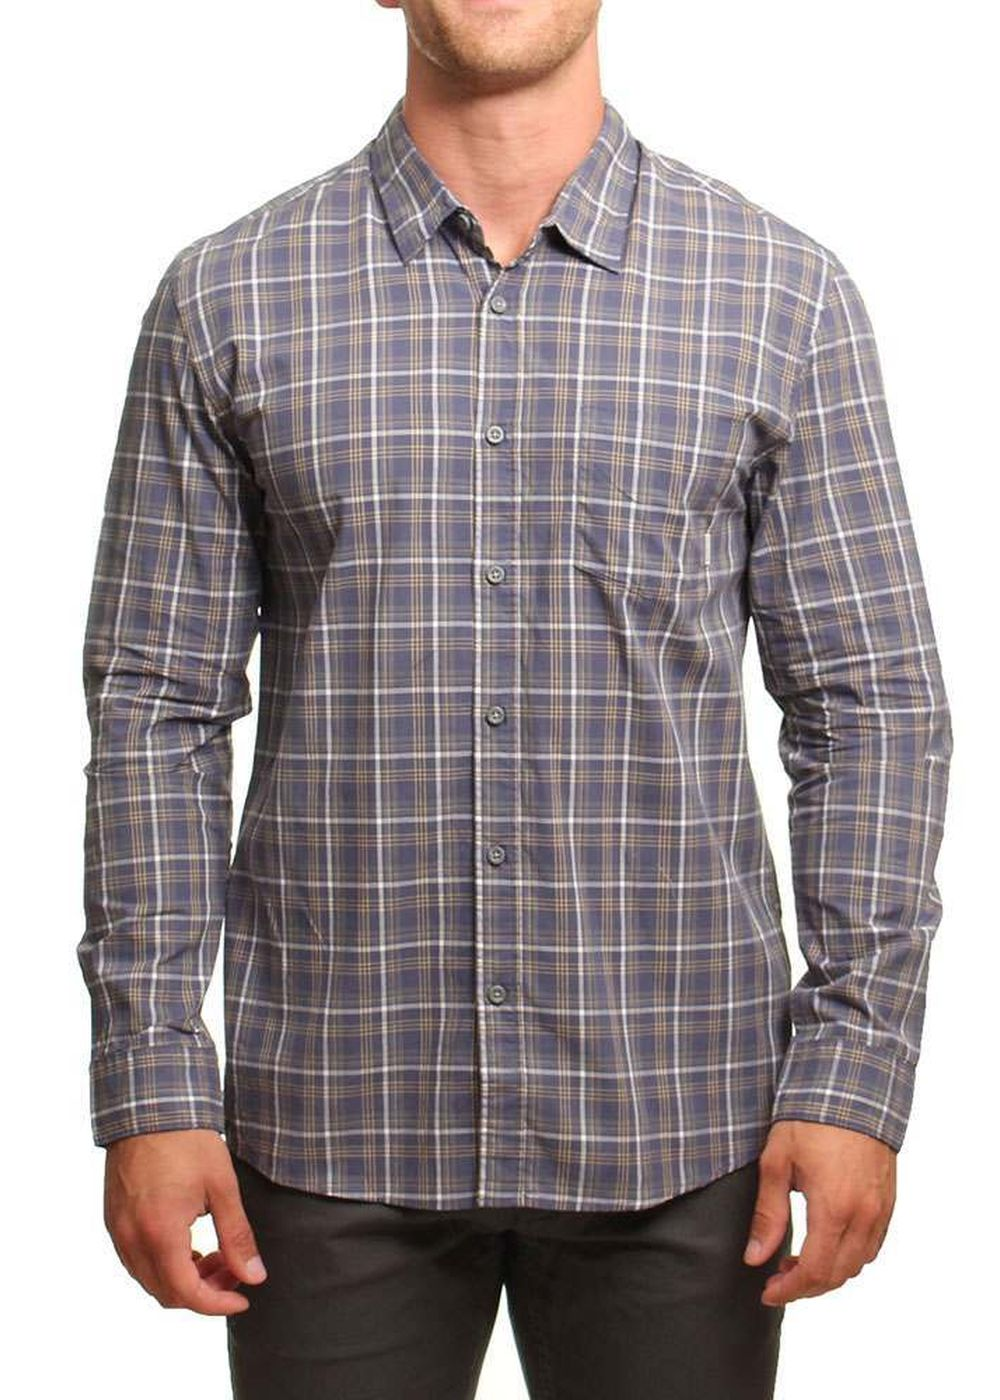 quiksilver-everyday-check-shirt-night-shadow